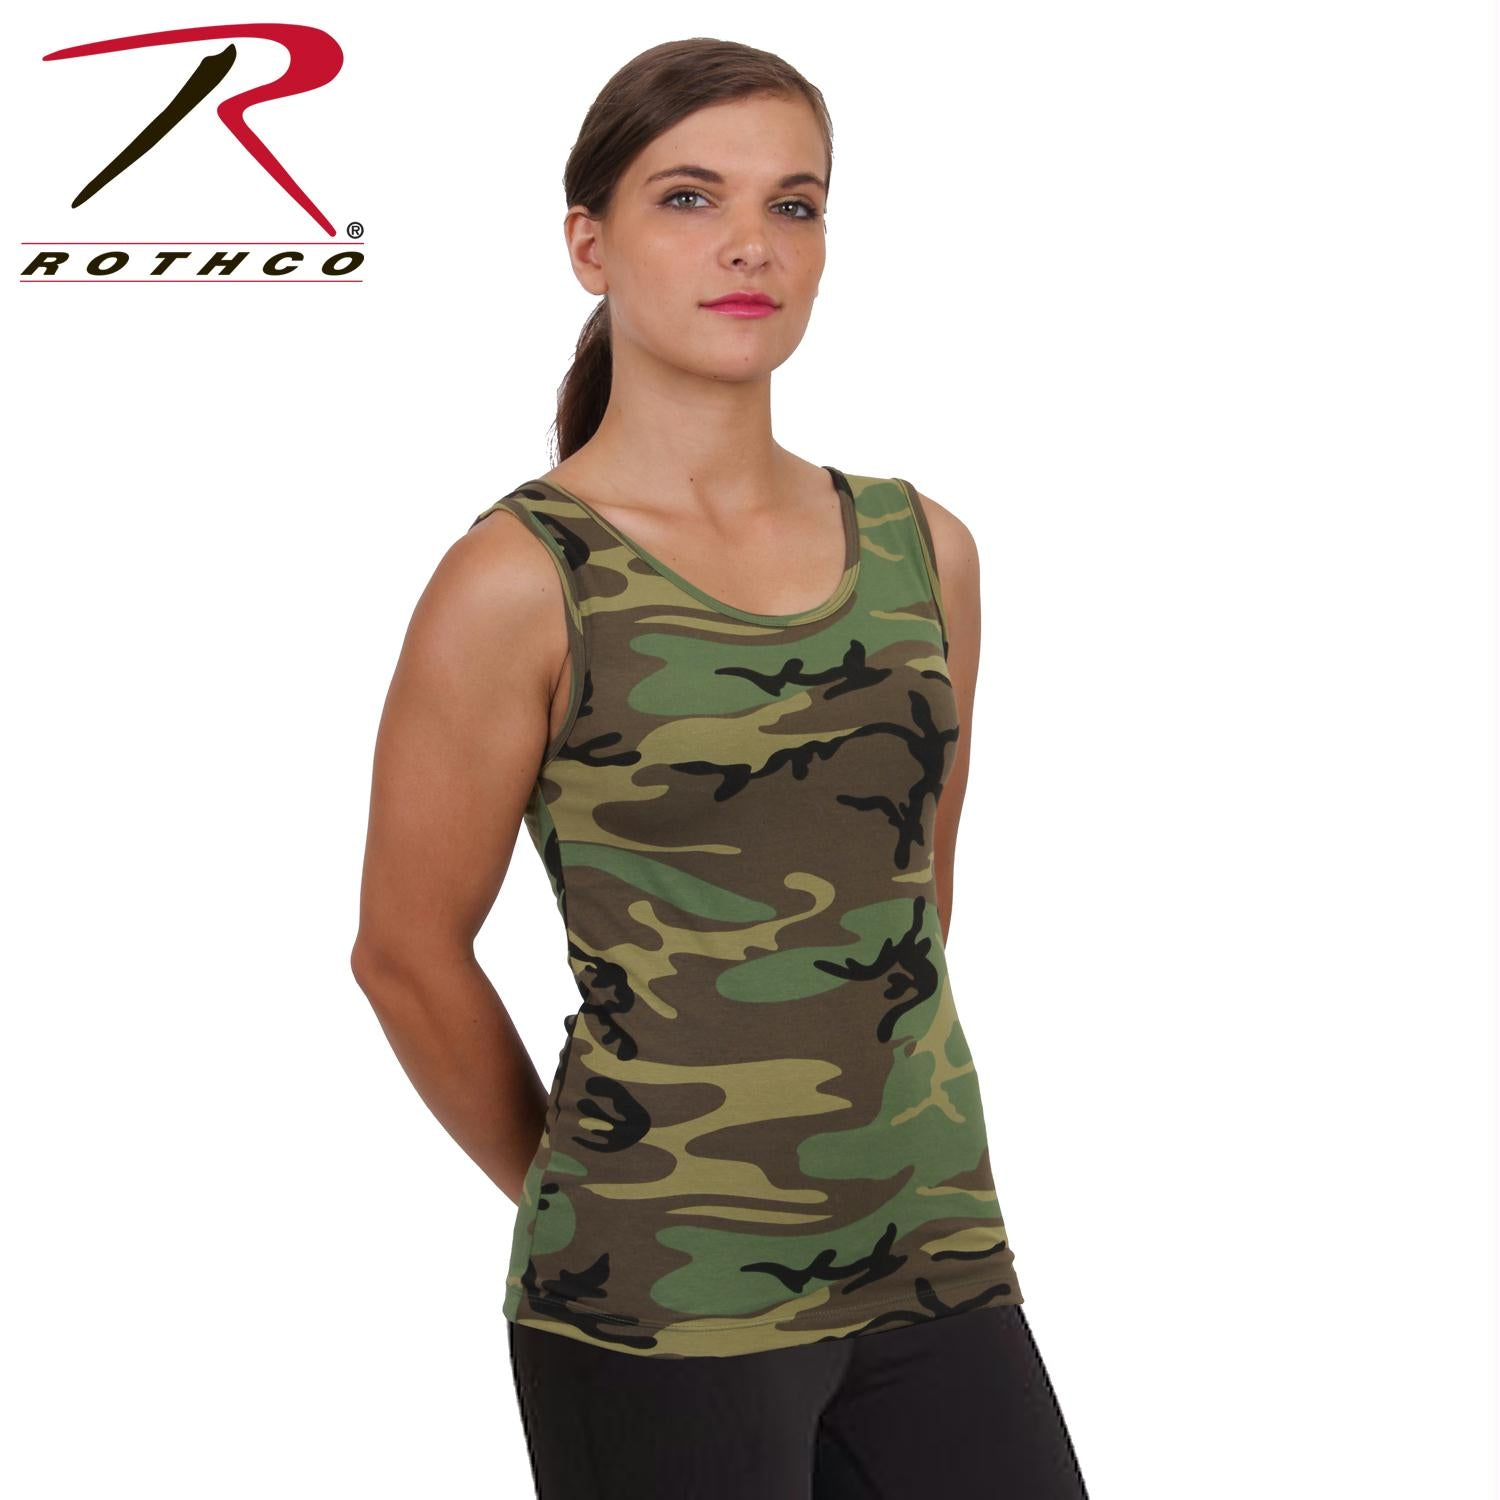 Rothco Womens Camo Stretch Tank Top - Woodland Camo / XL